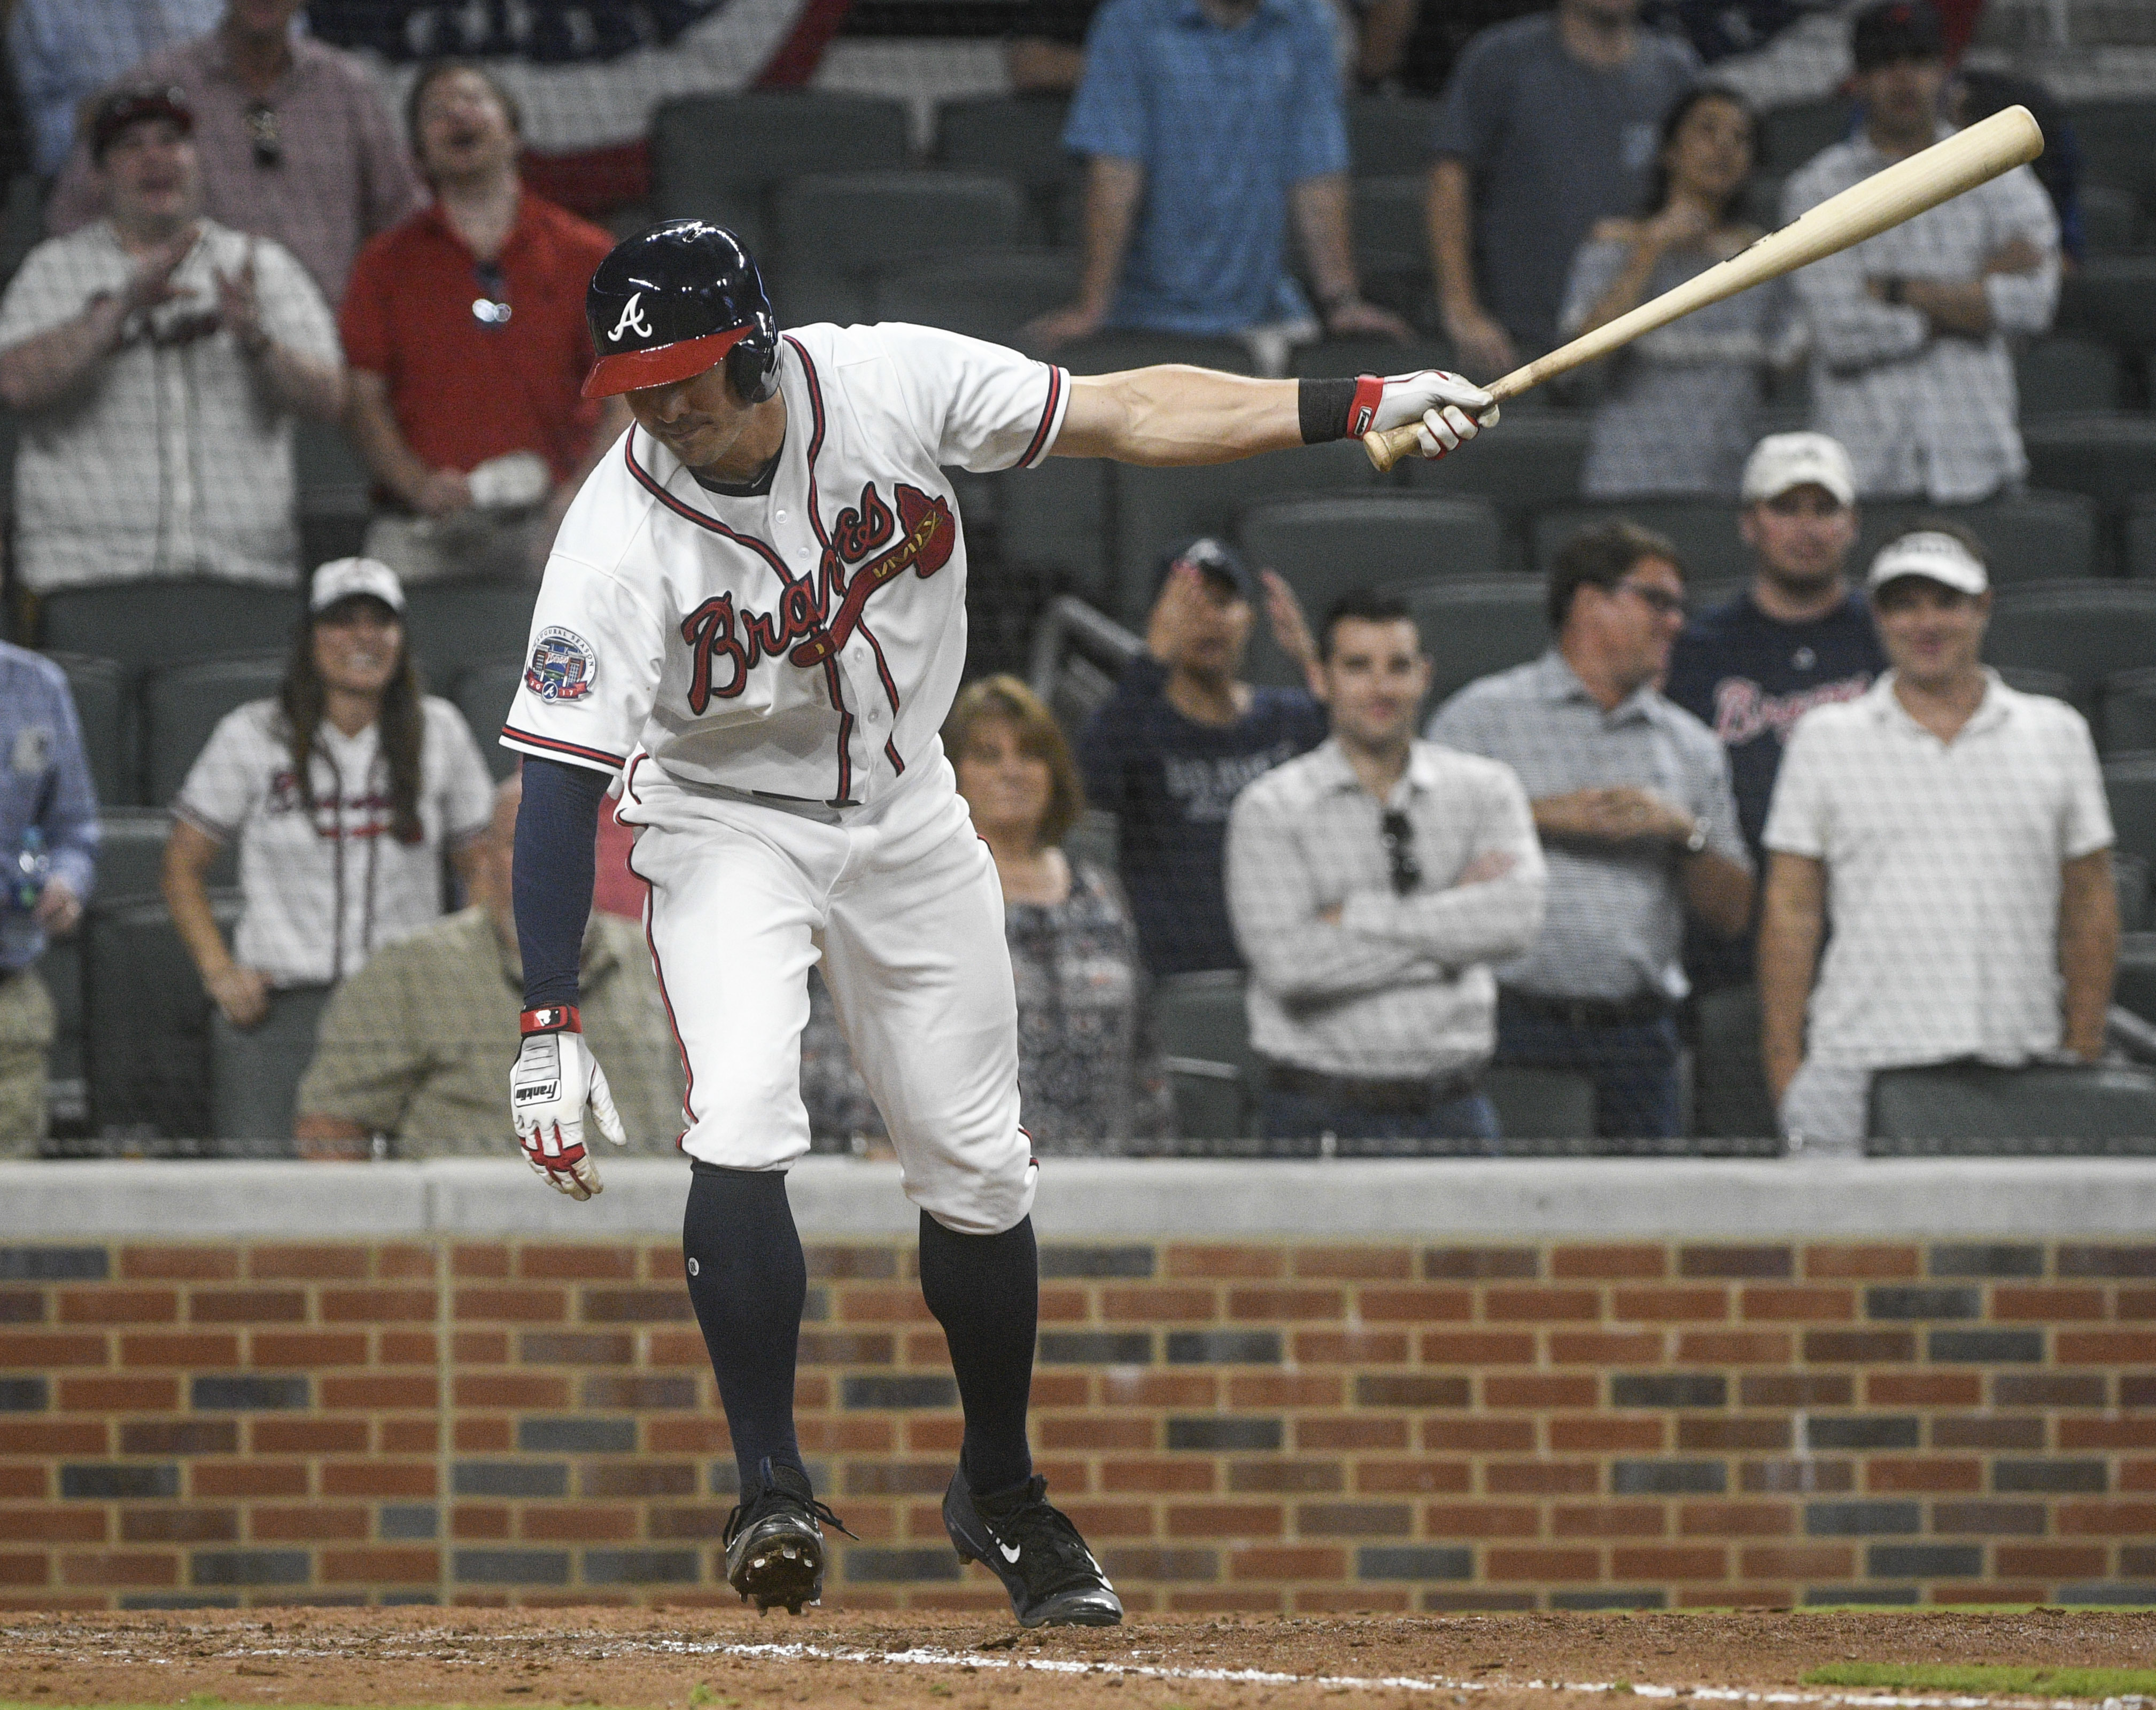 Atlanta Braves' Chase d'Arnaud strikes out with bases loaded to end a baseball game against the Washington Nationals, Tuesday, April 18, 2017, in Atlanta. Washington won 3-1. (AP Photo/John Amis)